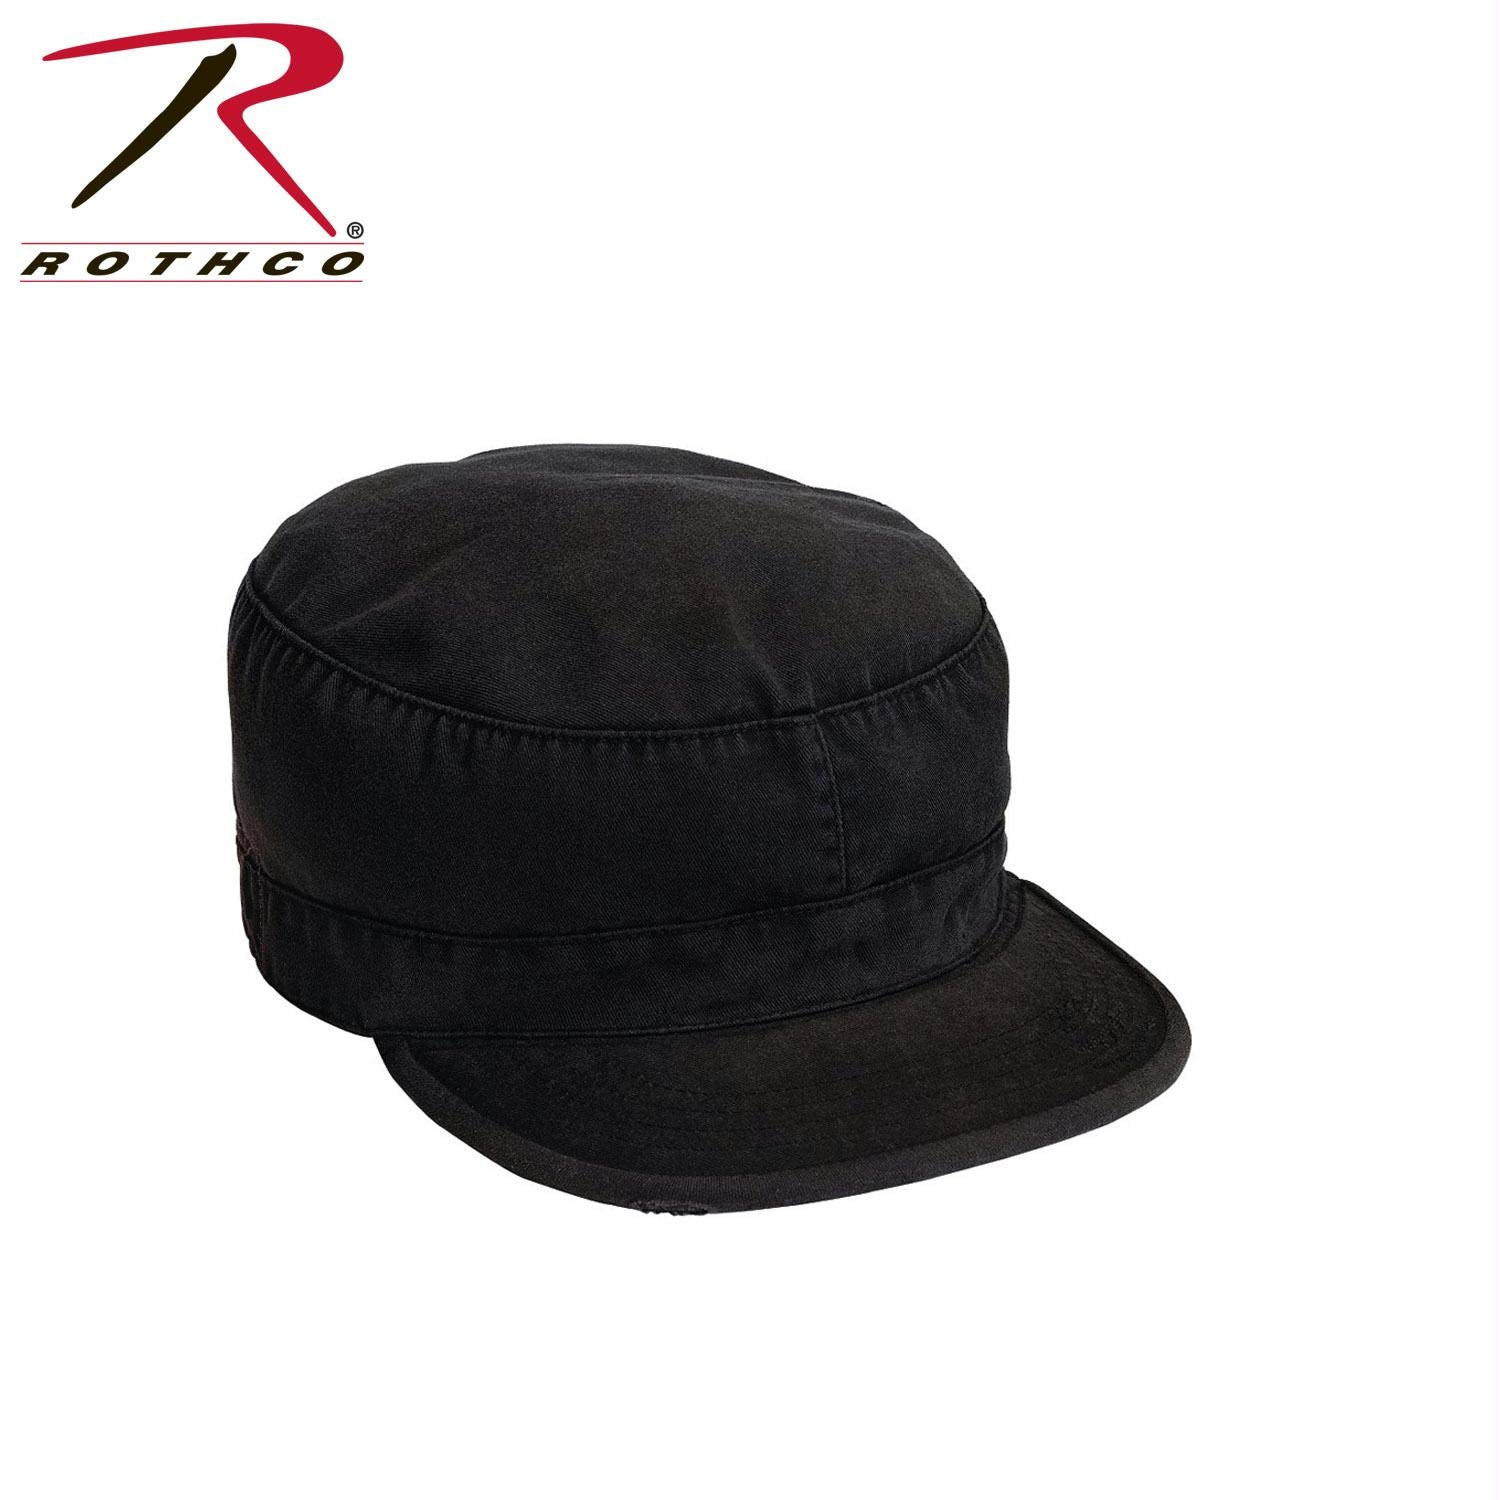 Rothco Solid Vintage Fatigue Cap - Black / M